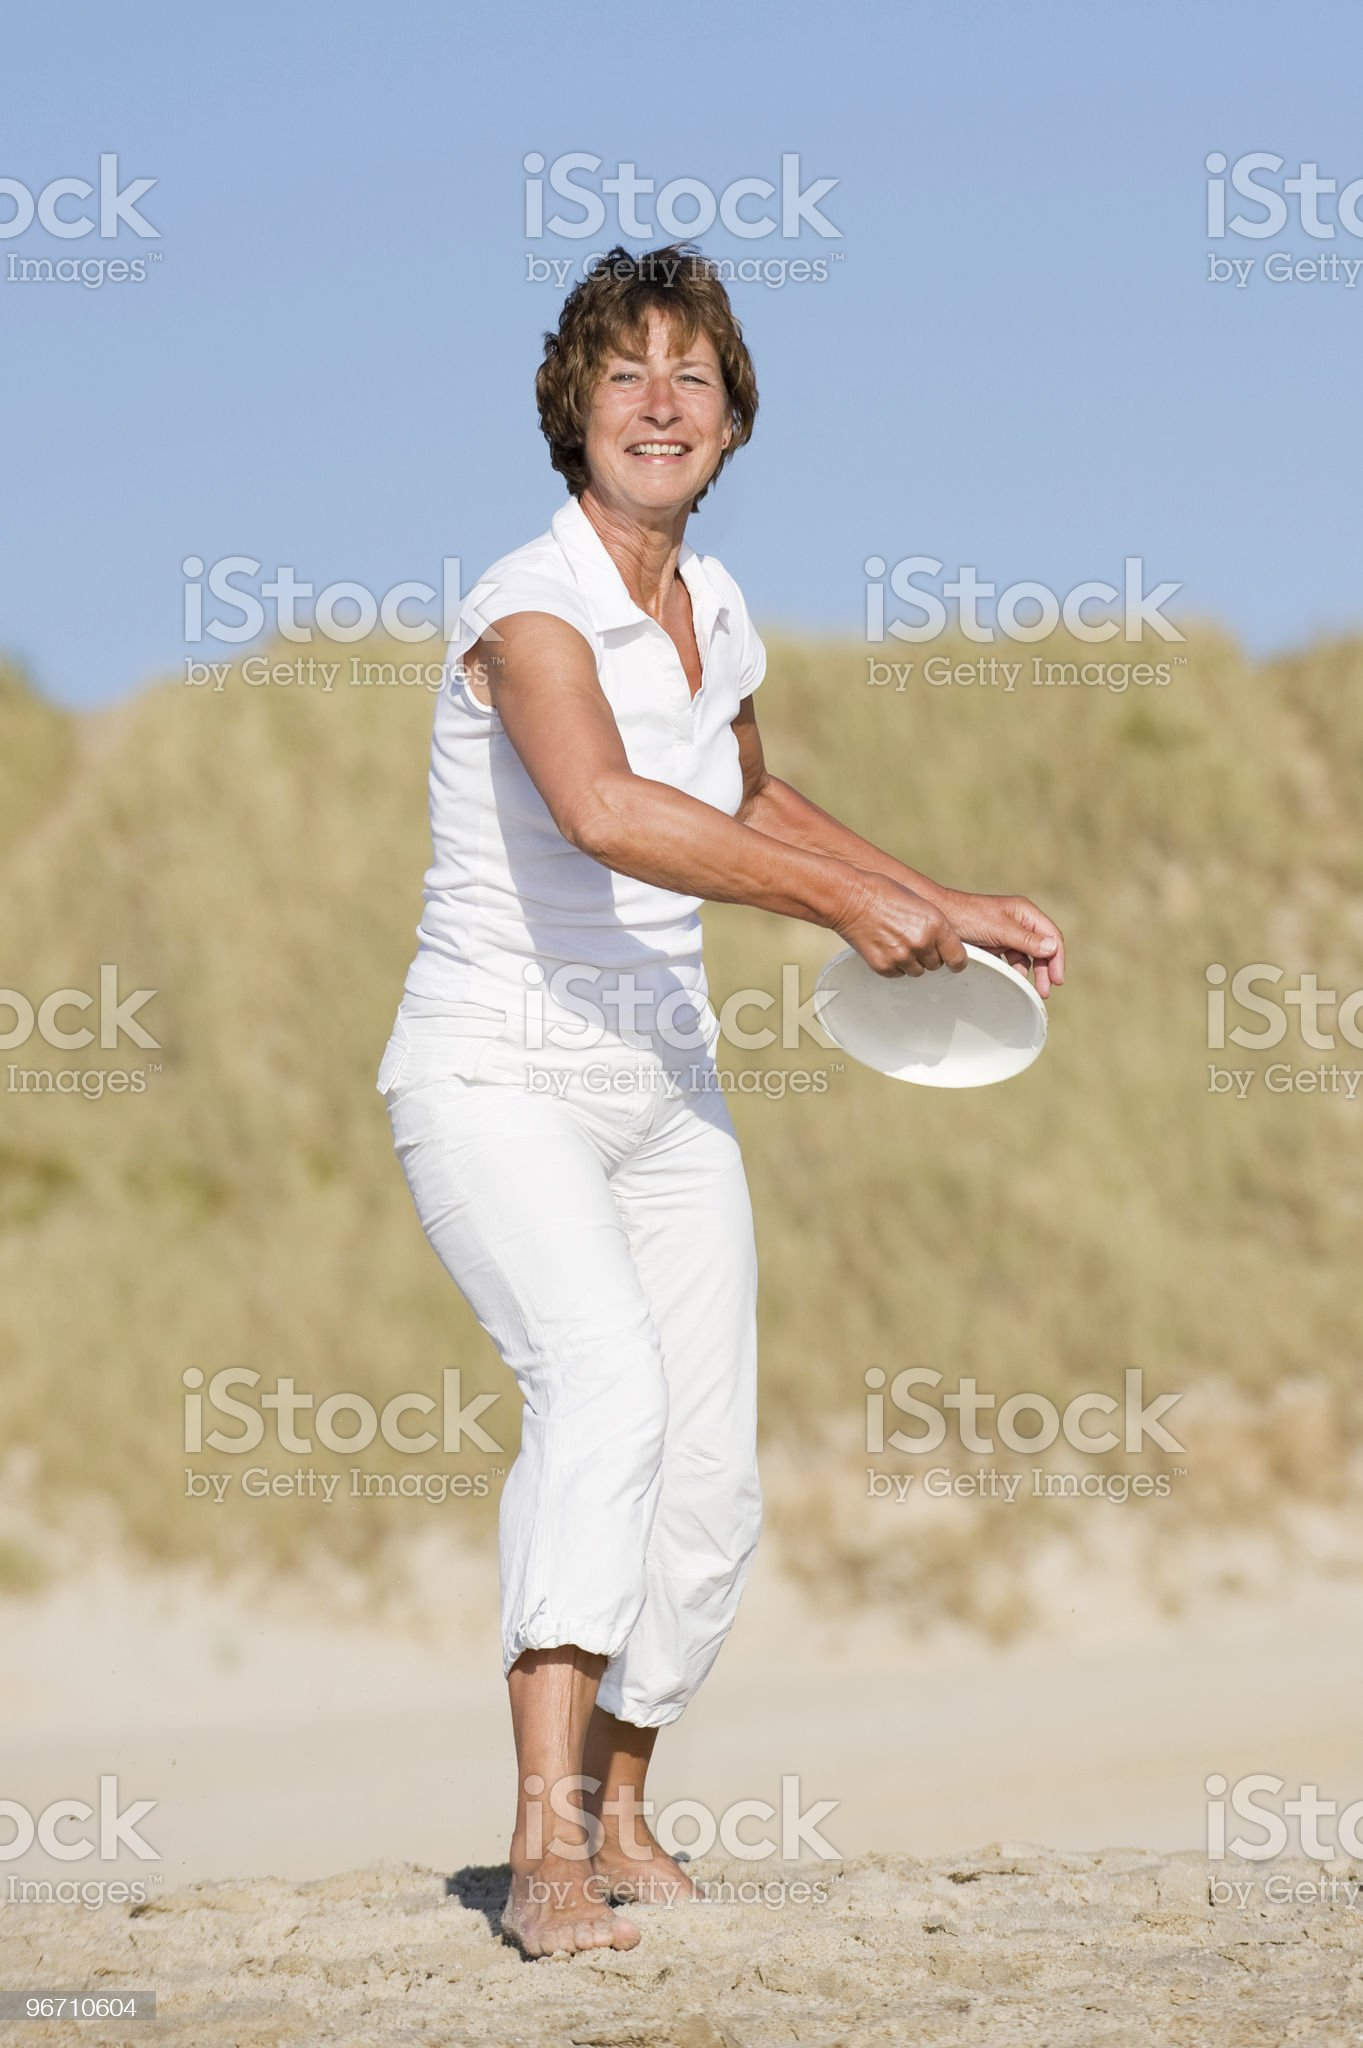 Active at the beach royalty-free stock photo